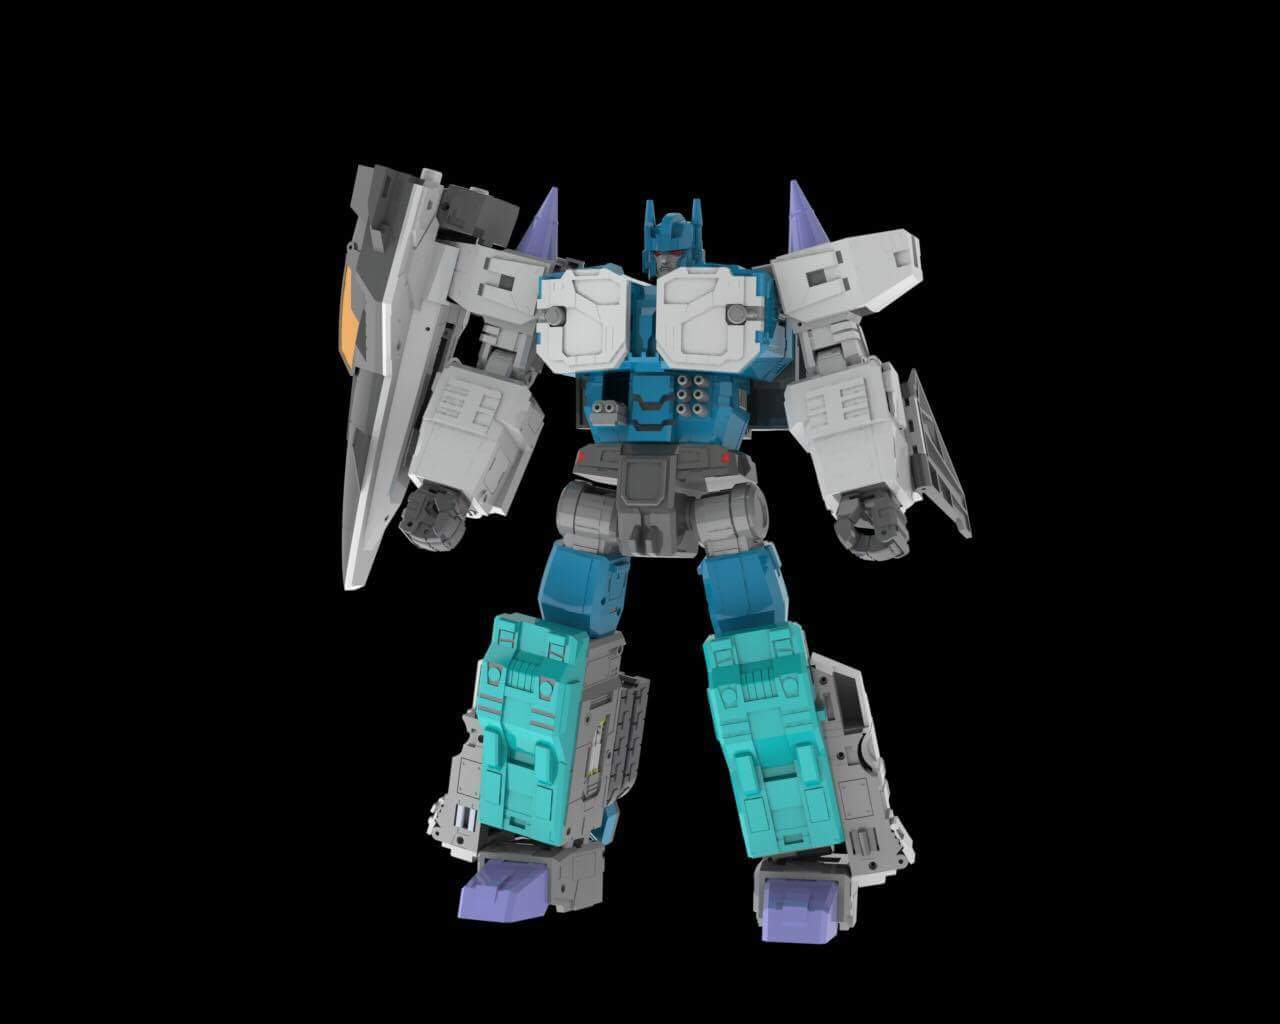 [FansHobby] Produit Tiers - Master Builder MB-08 Double Evil - aka Overlord (TF Masterforce) 9jKzjEGQ